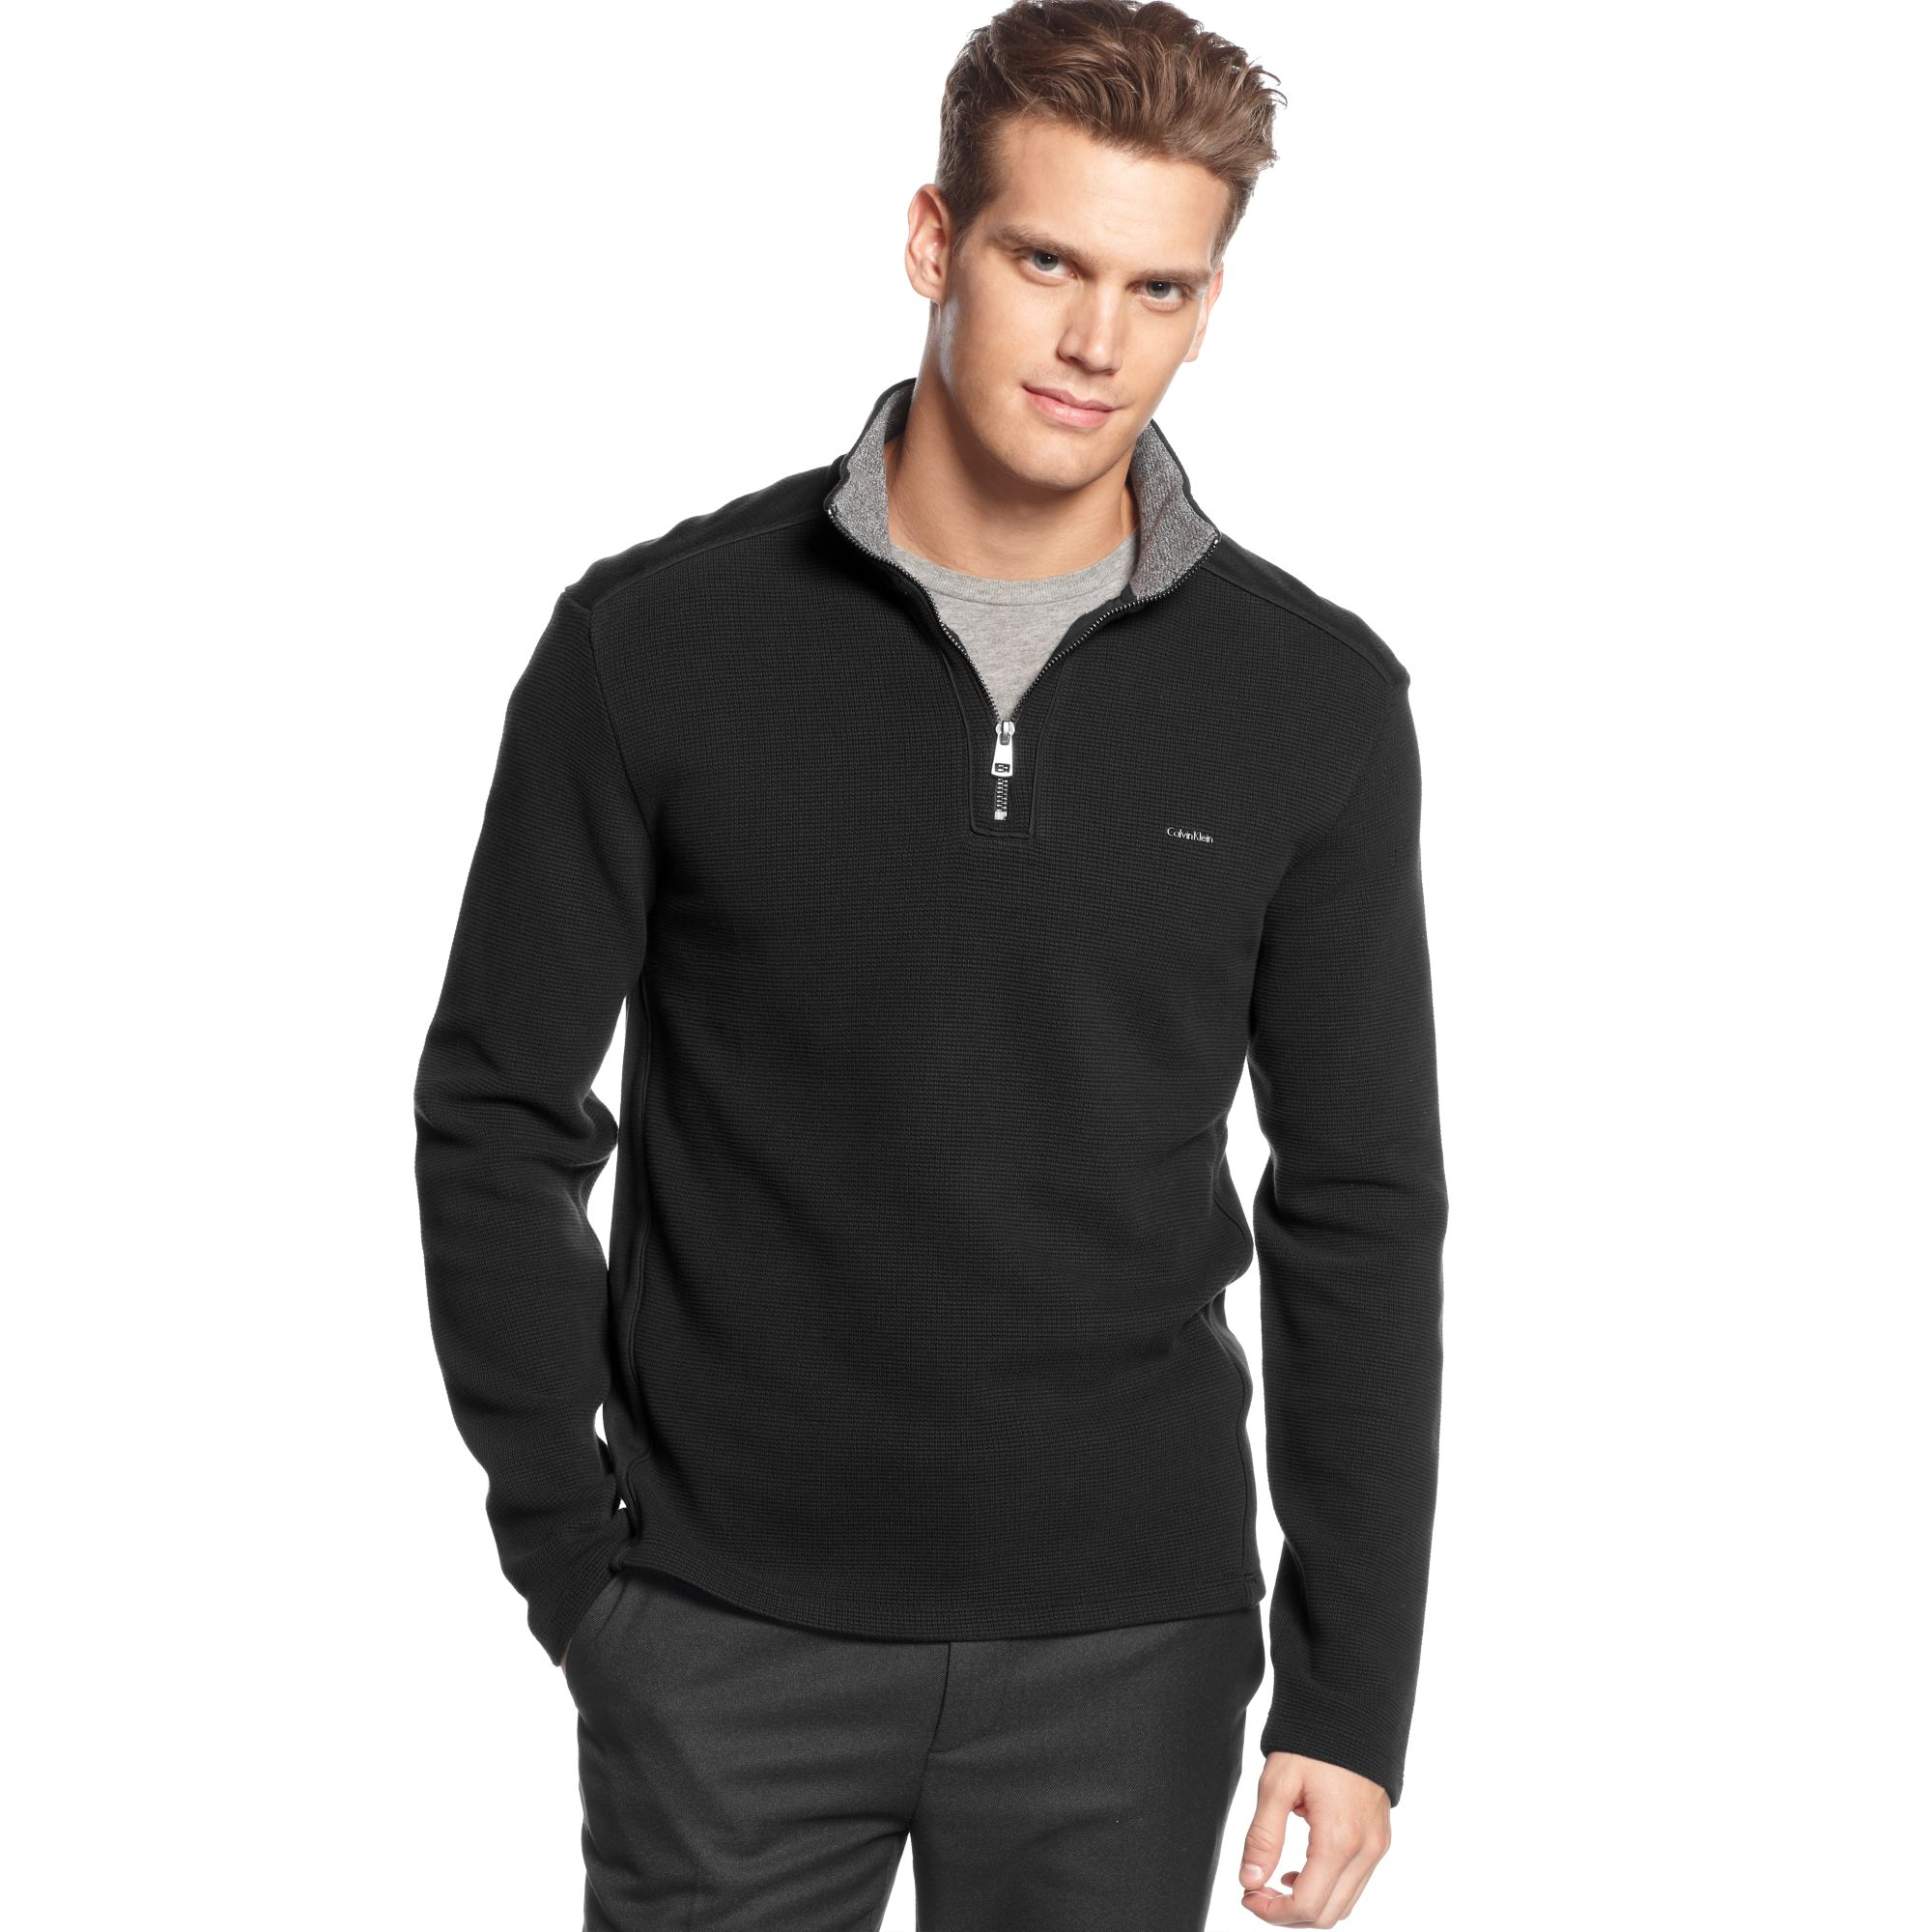 calvin klein quarter zip jacquard pullover sweater in black for men lyst. Black Bedroom Furniture Sets. Home Design Ideas